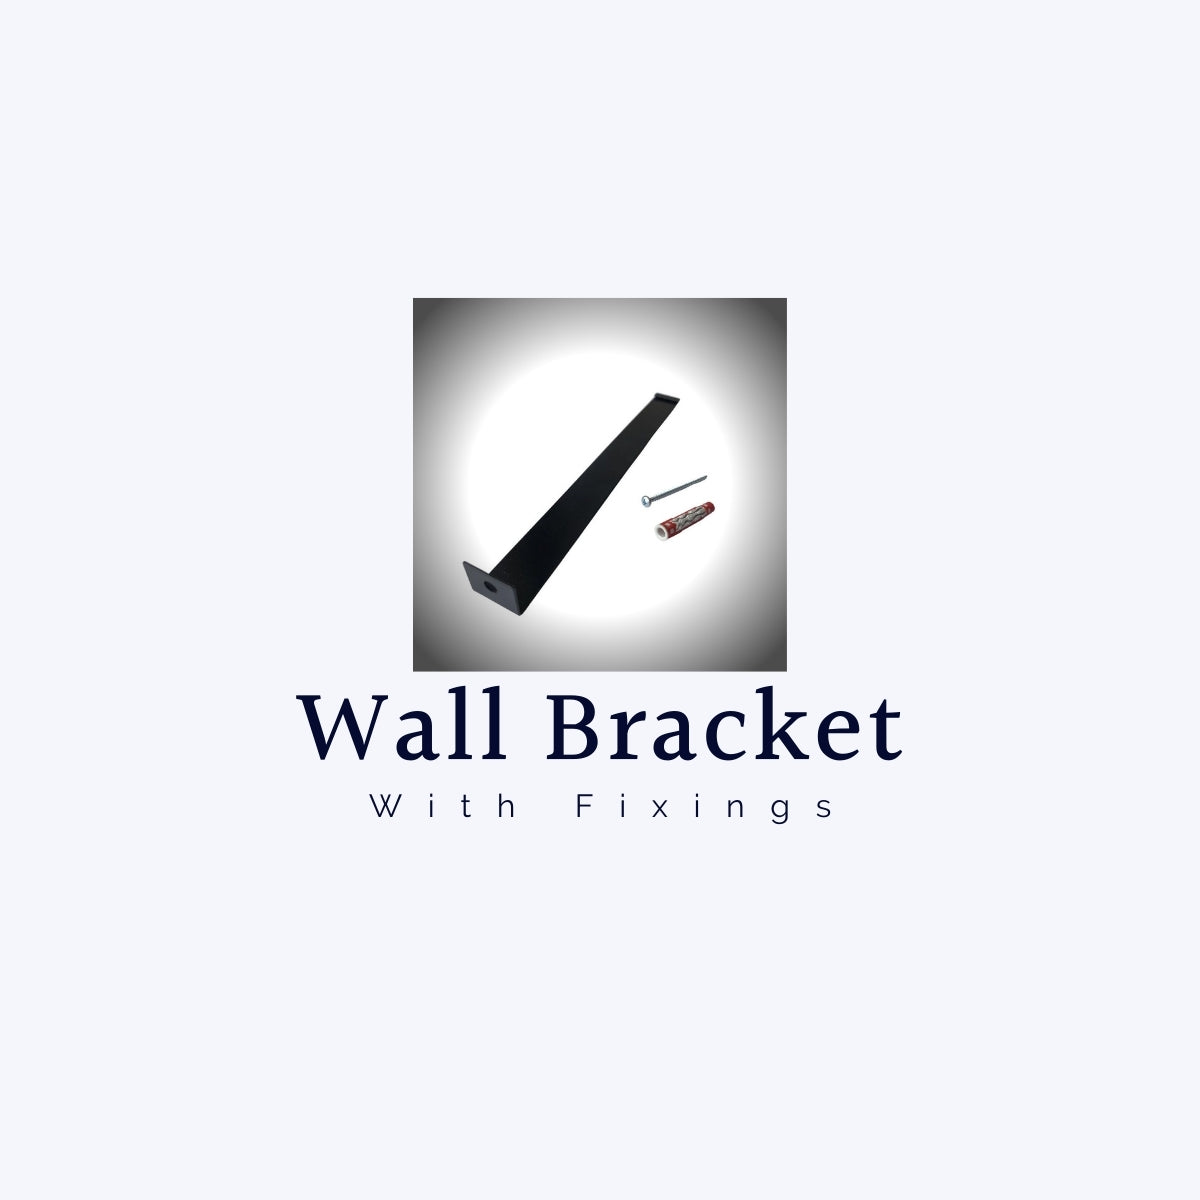 Wall Bracket With Fixings